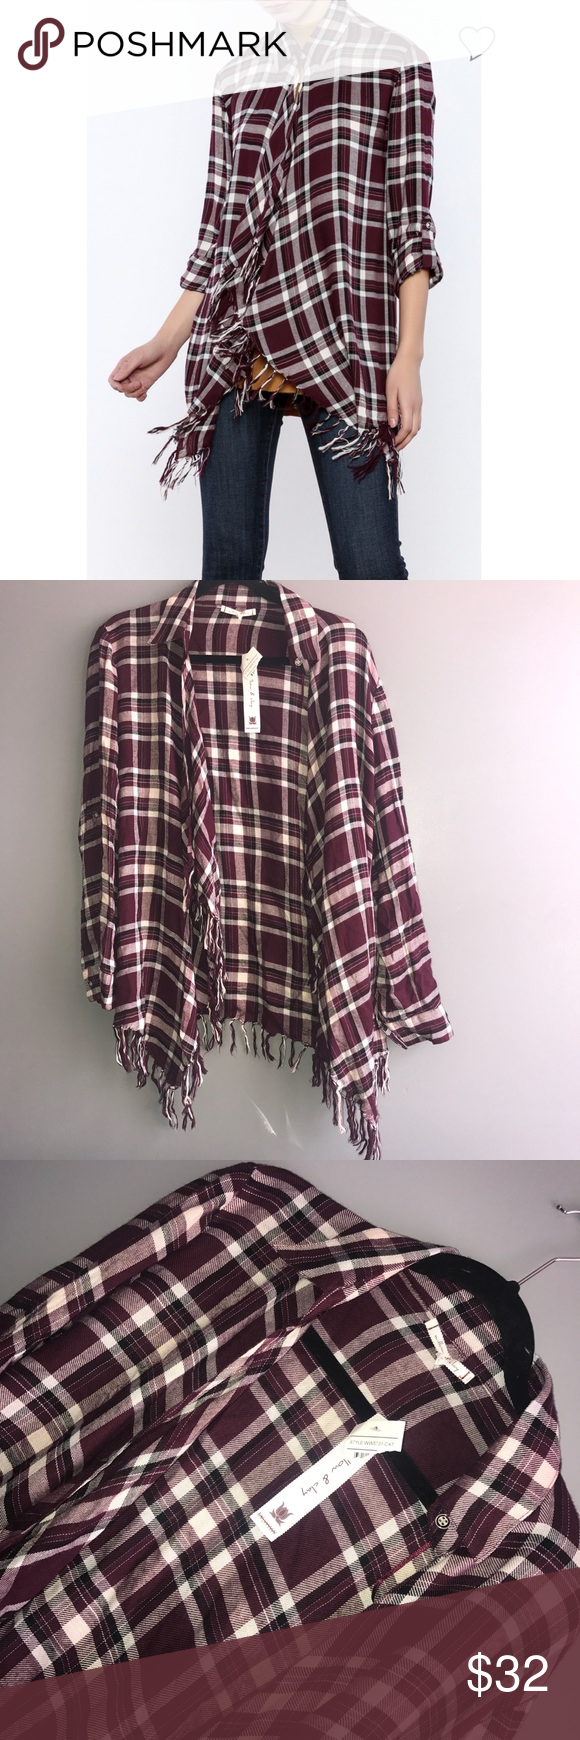 WILLOW & CLAY plaid fringe shirt Super Cute! Offers Accepted! Willow & Clay Tops